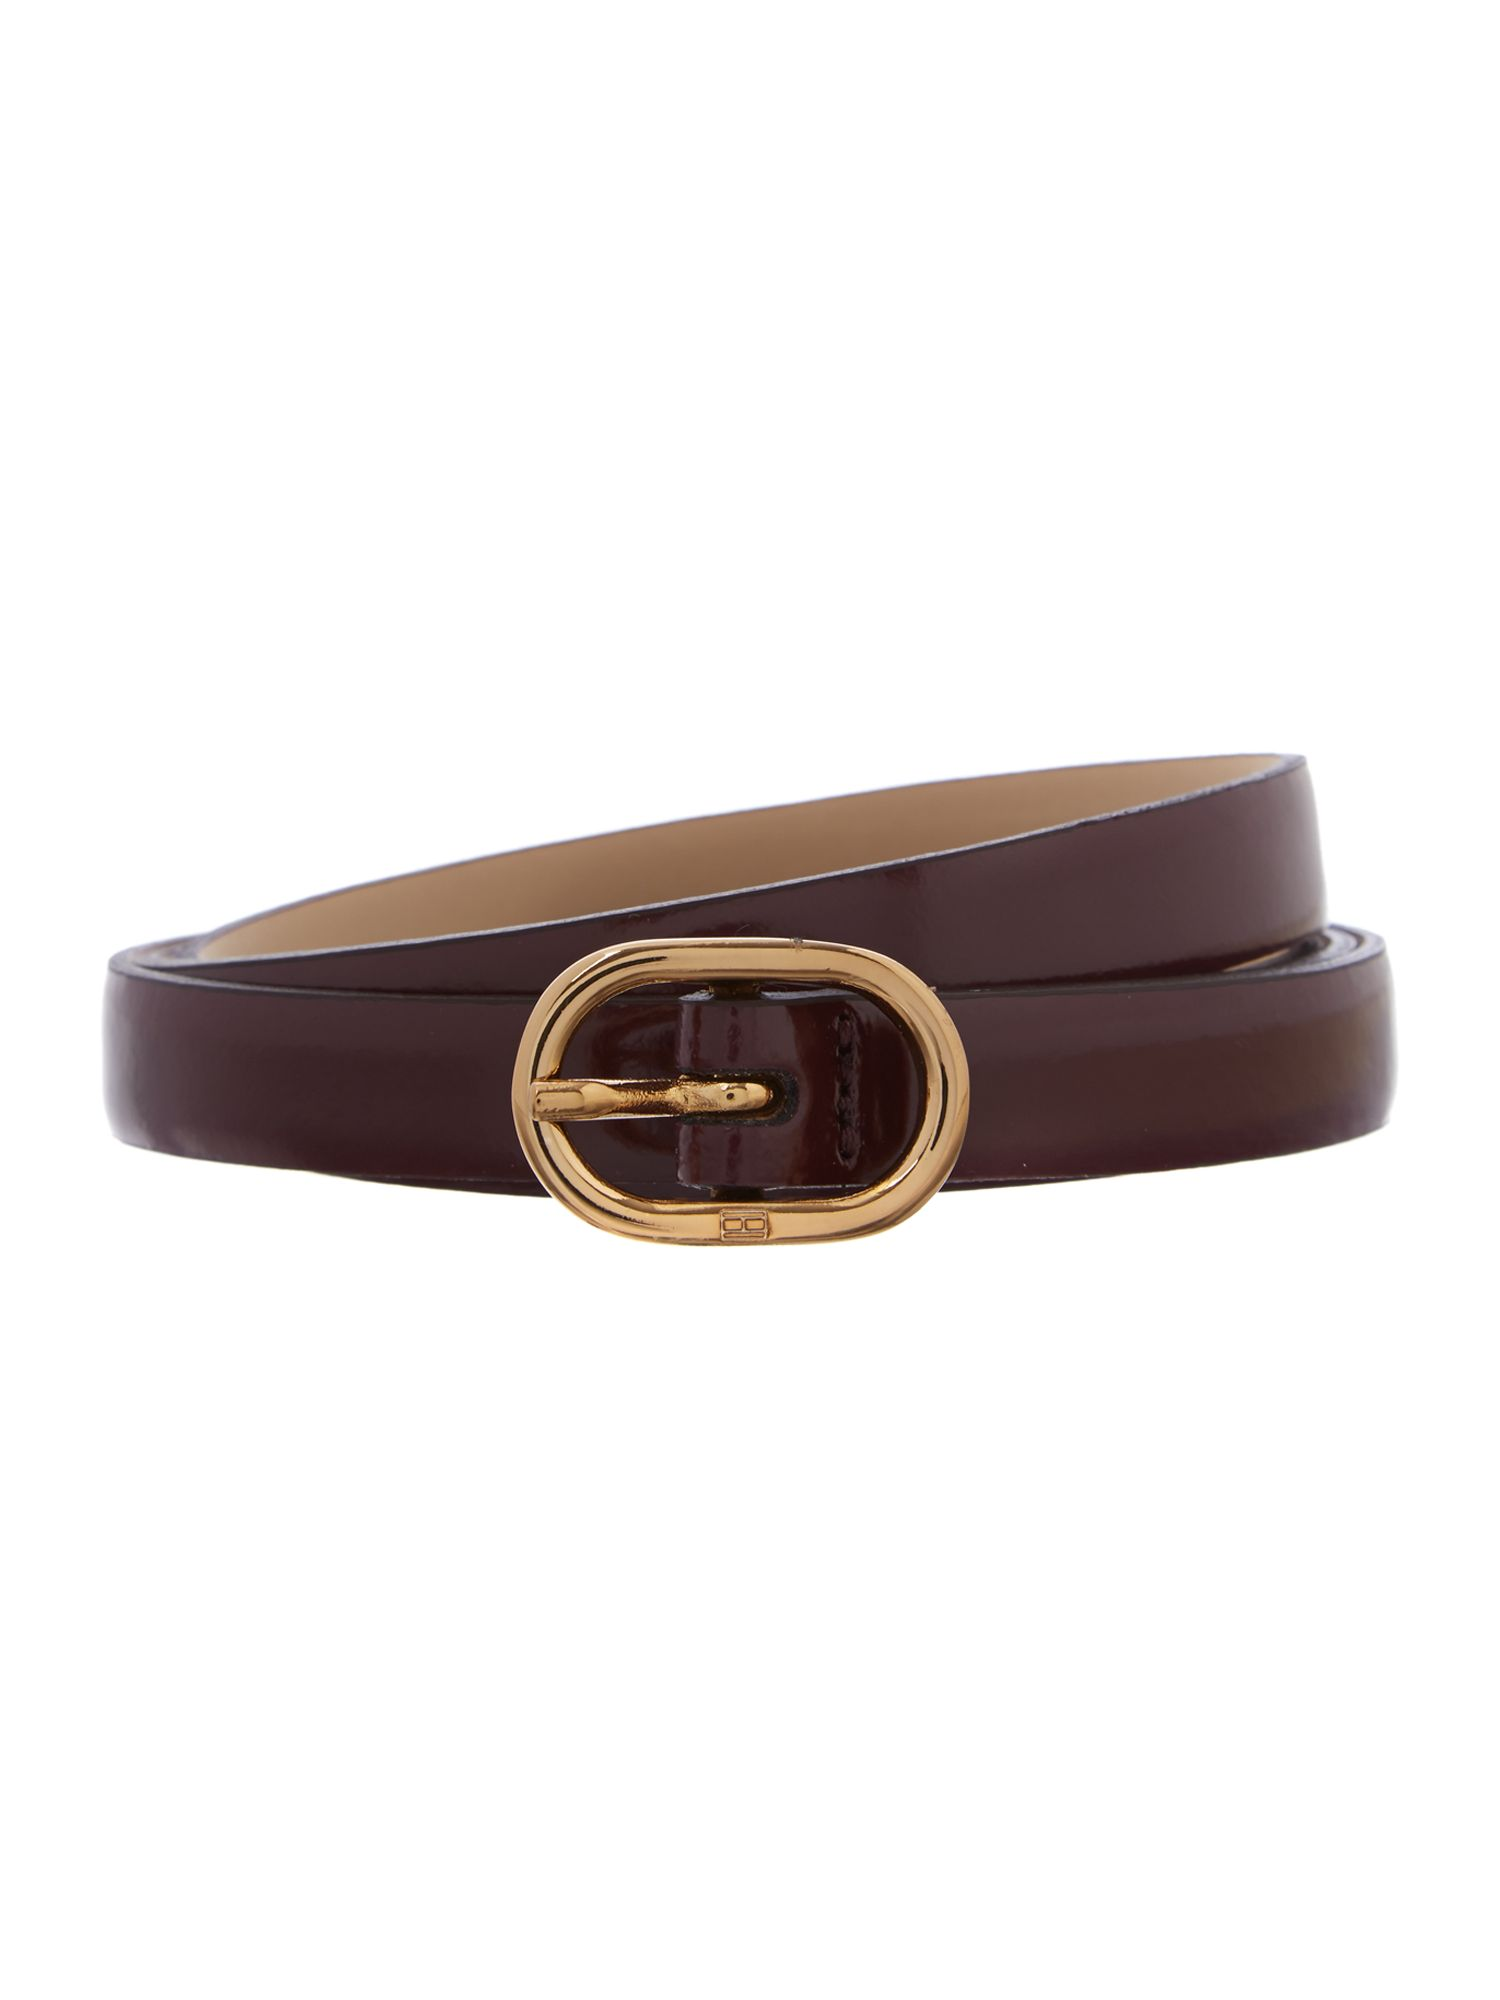 Tinsley red skinny waist belt